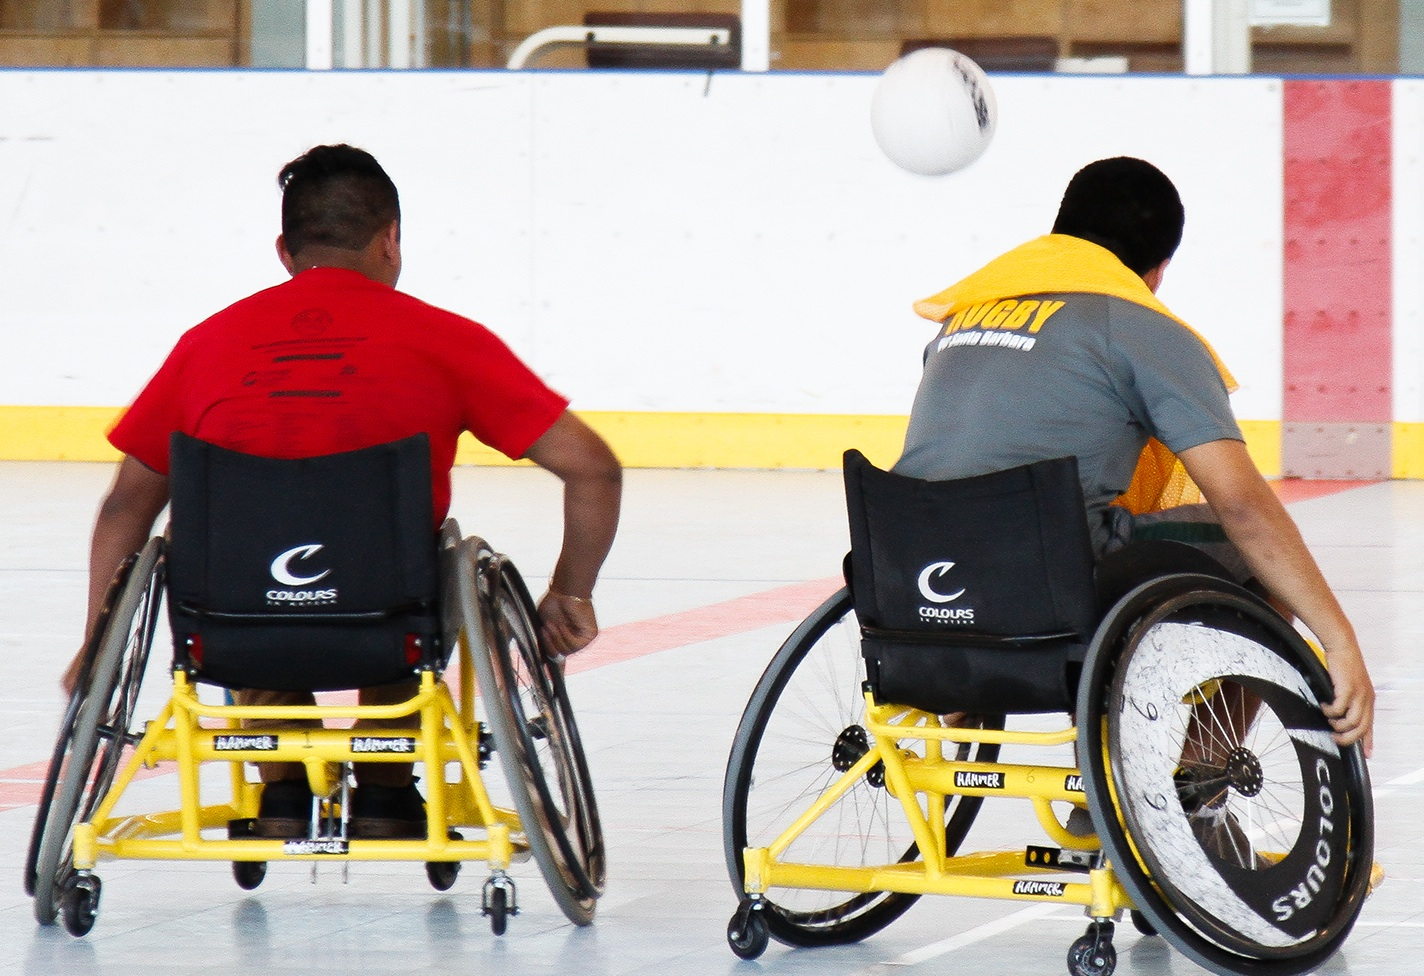 Players chase after the ball during Wheelchair Camp rugby game at the UCSB Rec Center multi-activity  center.